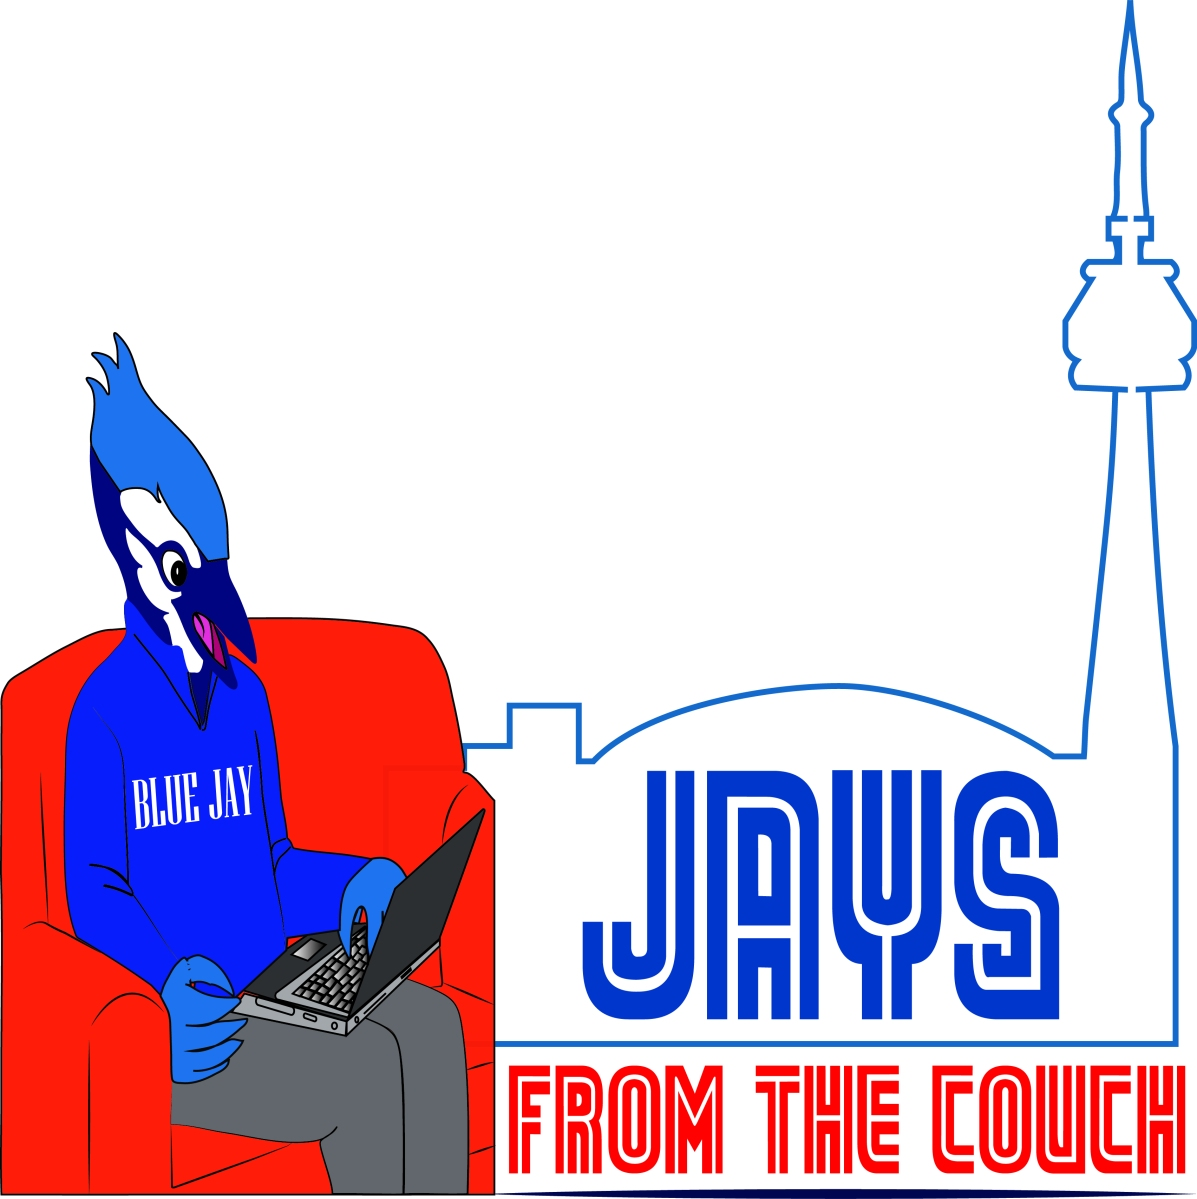 Blue Jays Fans: Welcome to Jays From the Couch!